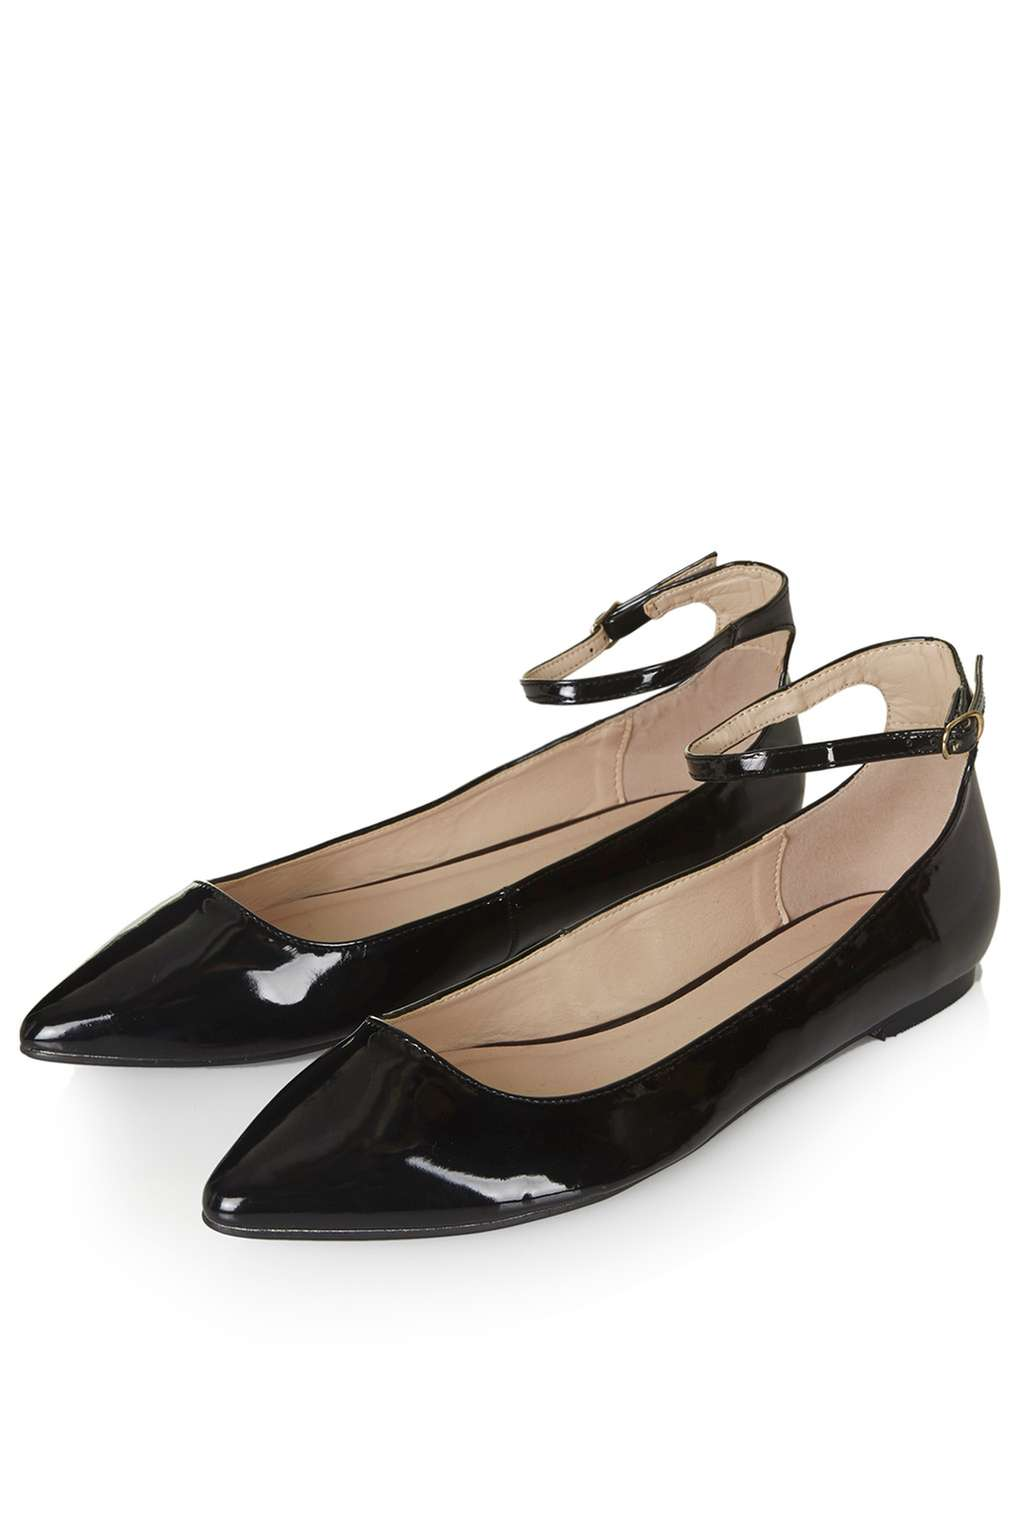 saloon ankle strap flats - topshop mhnqqgg